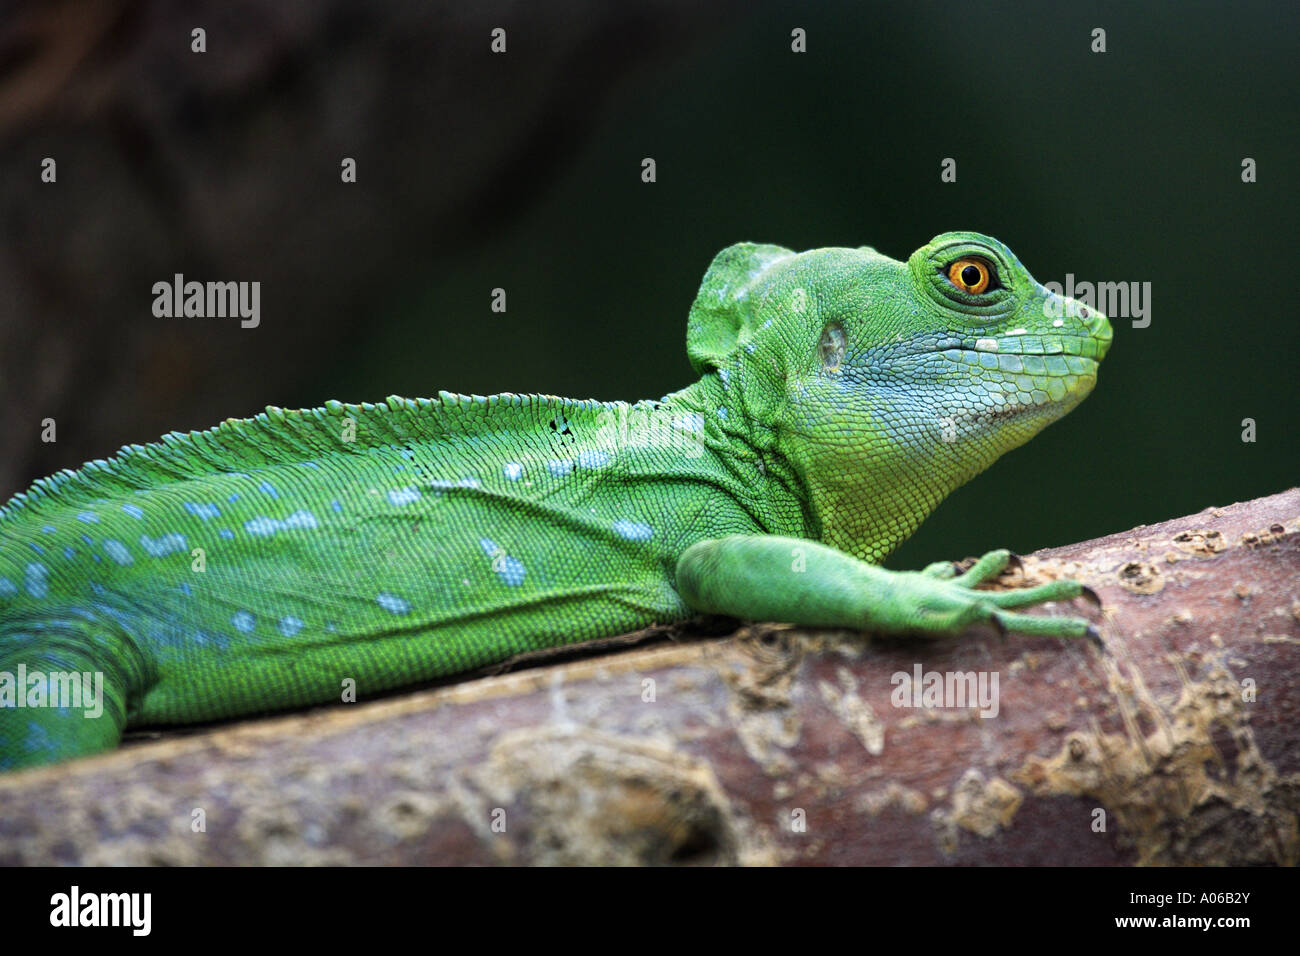 green basilisk lizard Stock Photo, Royalty Free Image ...